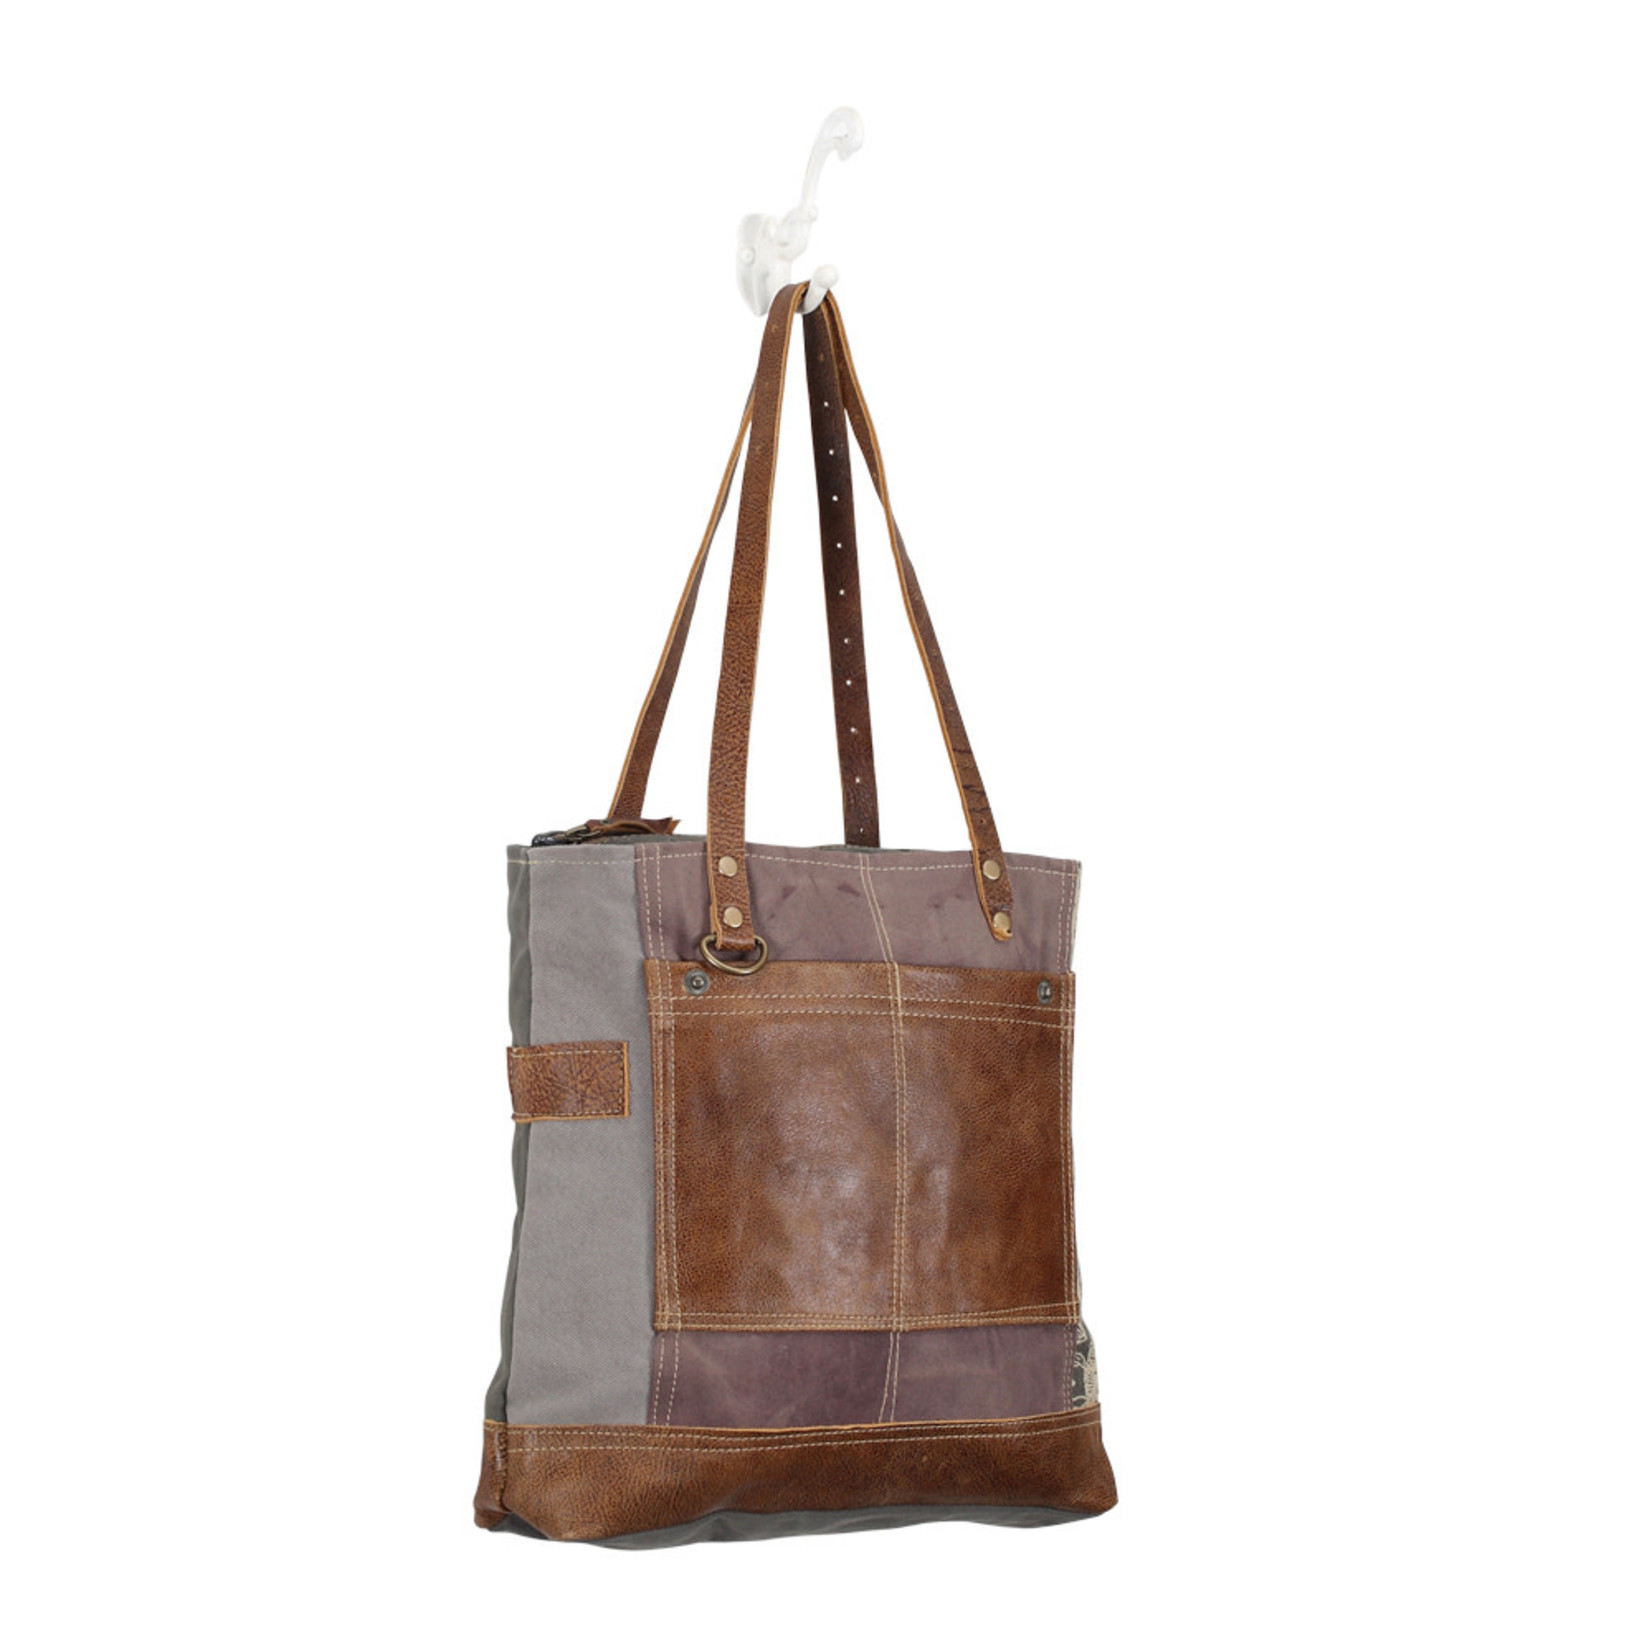 Myra Bags S-0915 Side Floral Print Canvas Tote Bag